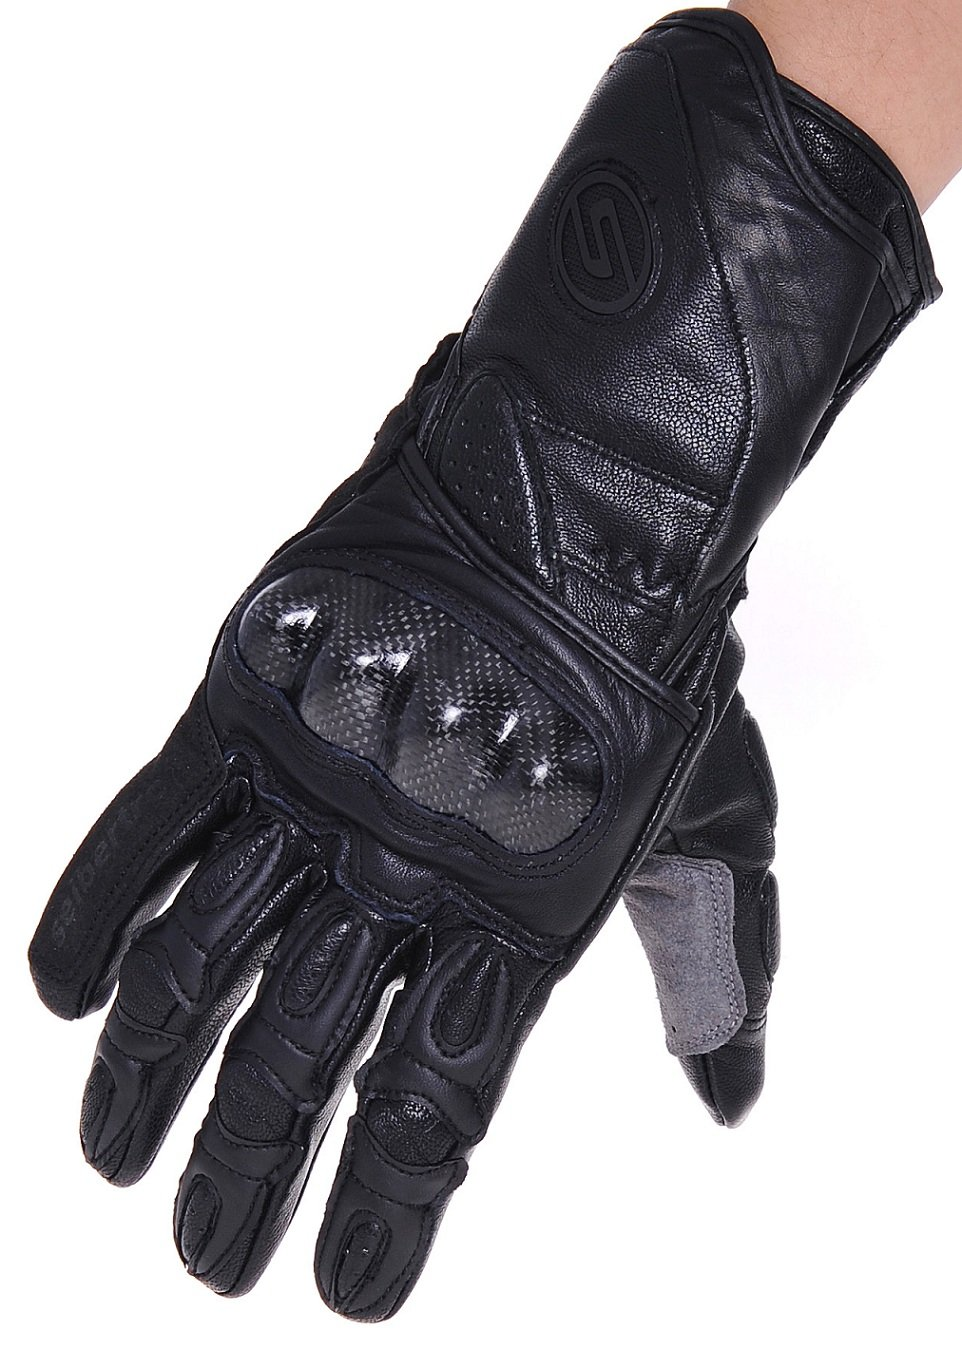 Seibertron SP2 SP-2 Mens Leather On-Road Motorcycle Gloves Genuine Leather Motocross Motobike Motorcycle Racing sports gloves